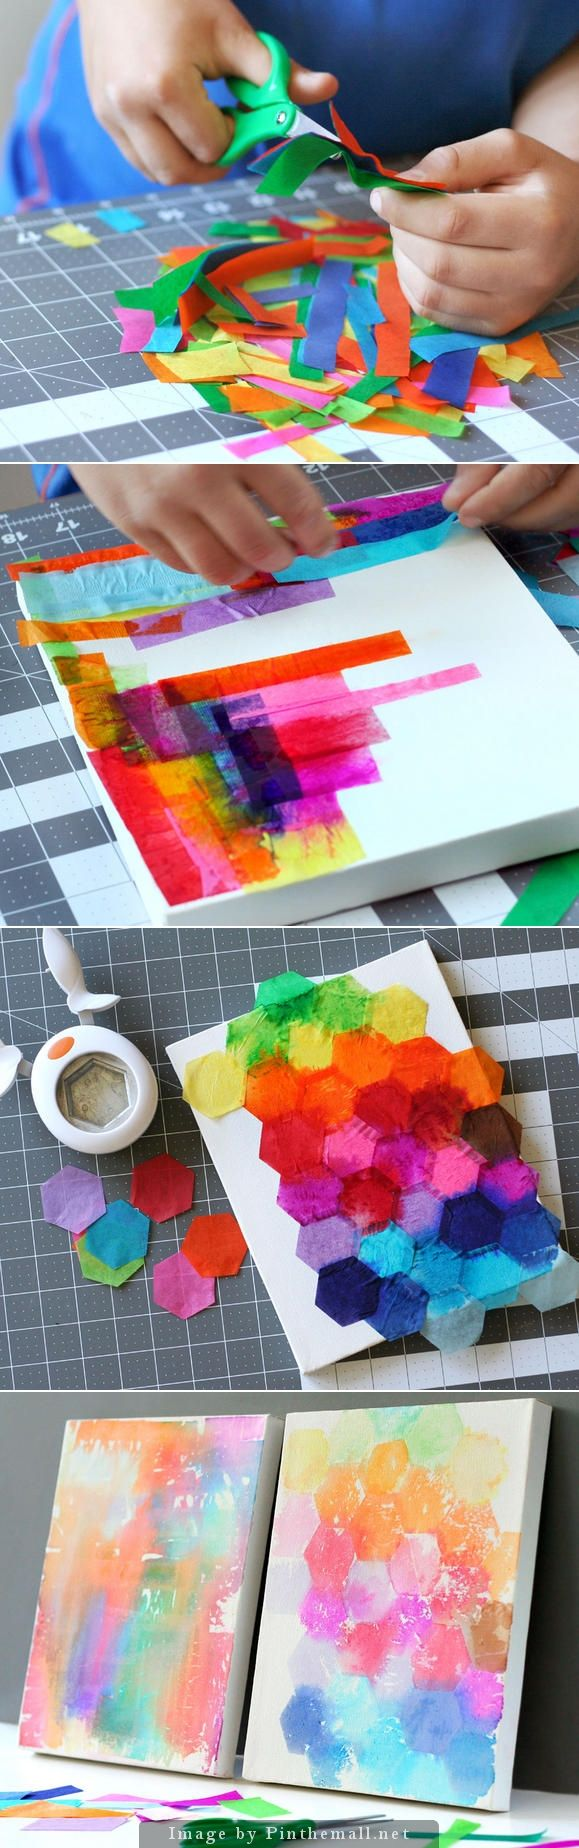 "Bleeding Tissue Paper Art - ""Painting""                                                                                                                                                                                 More"